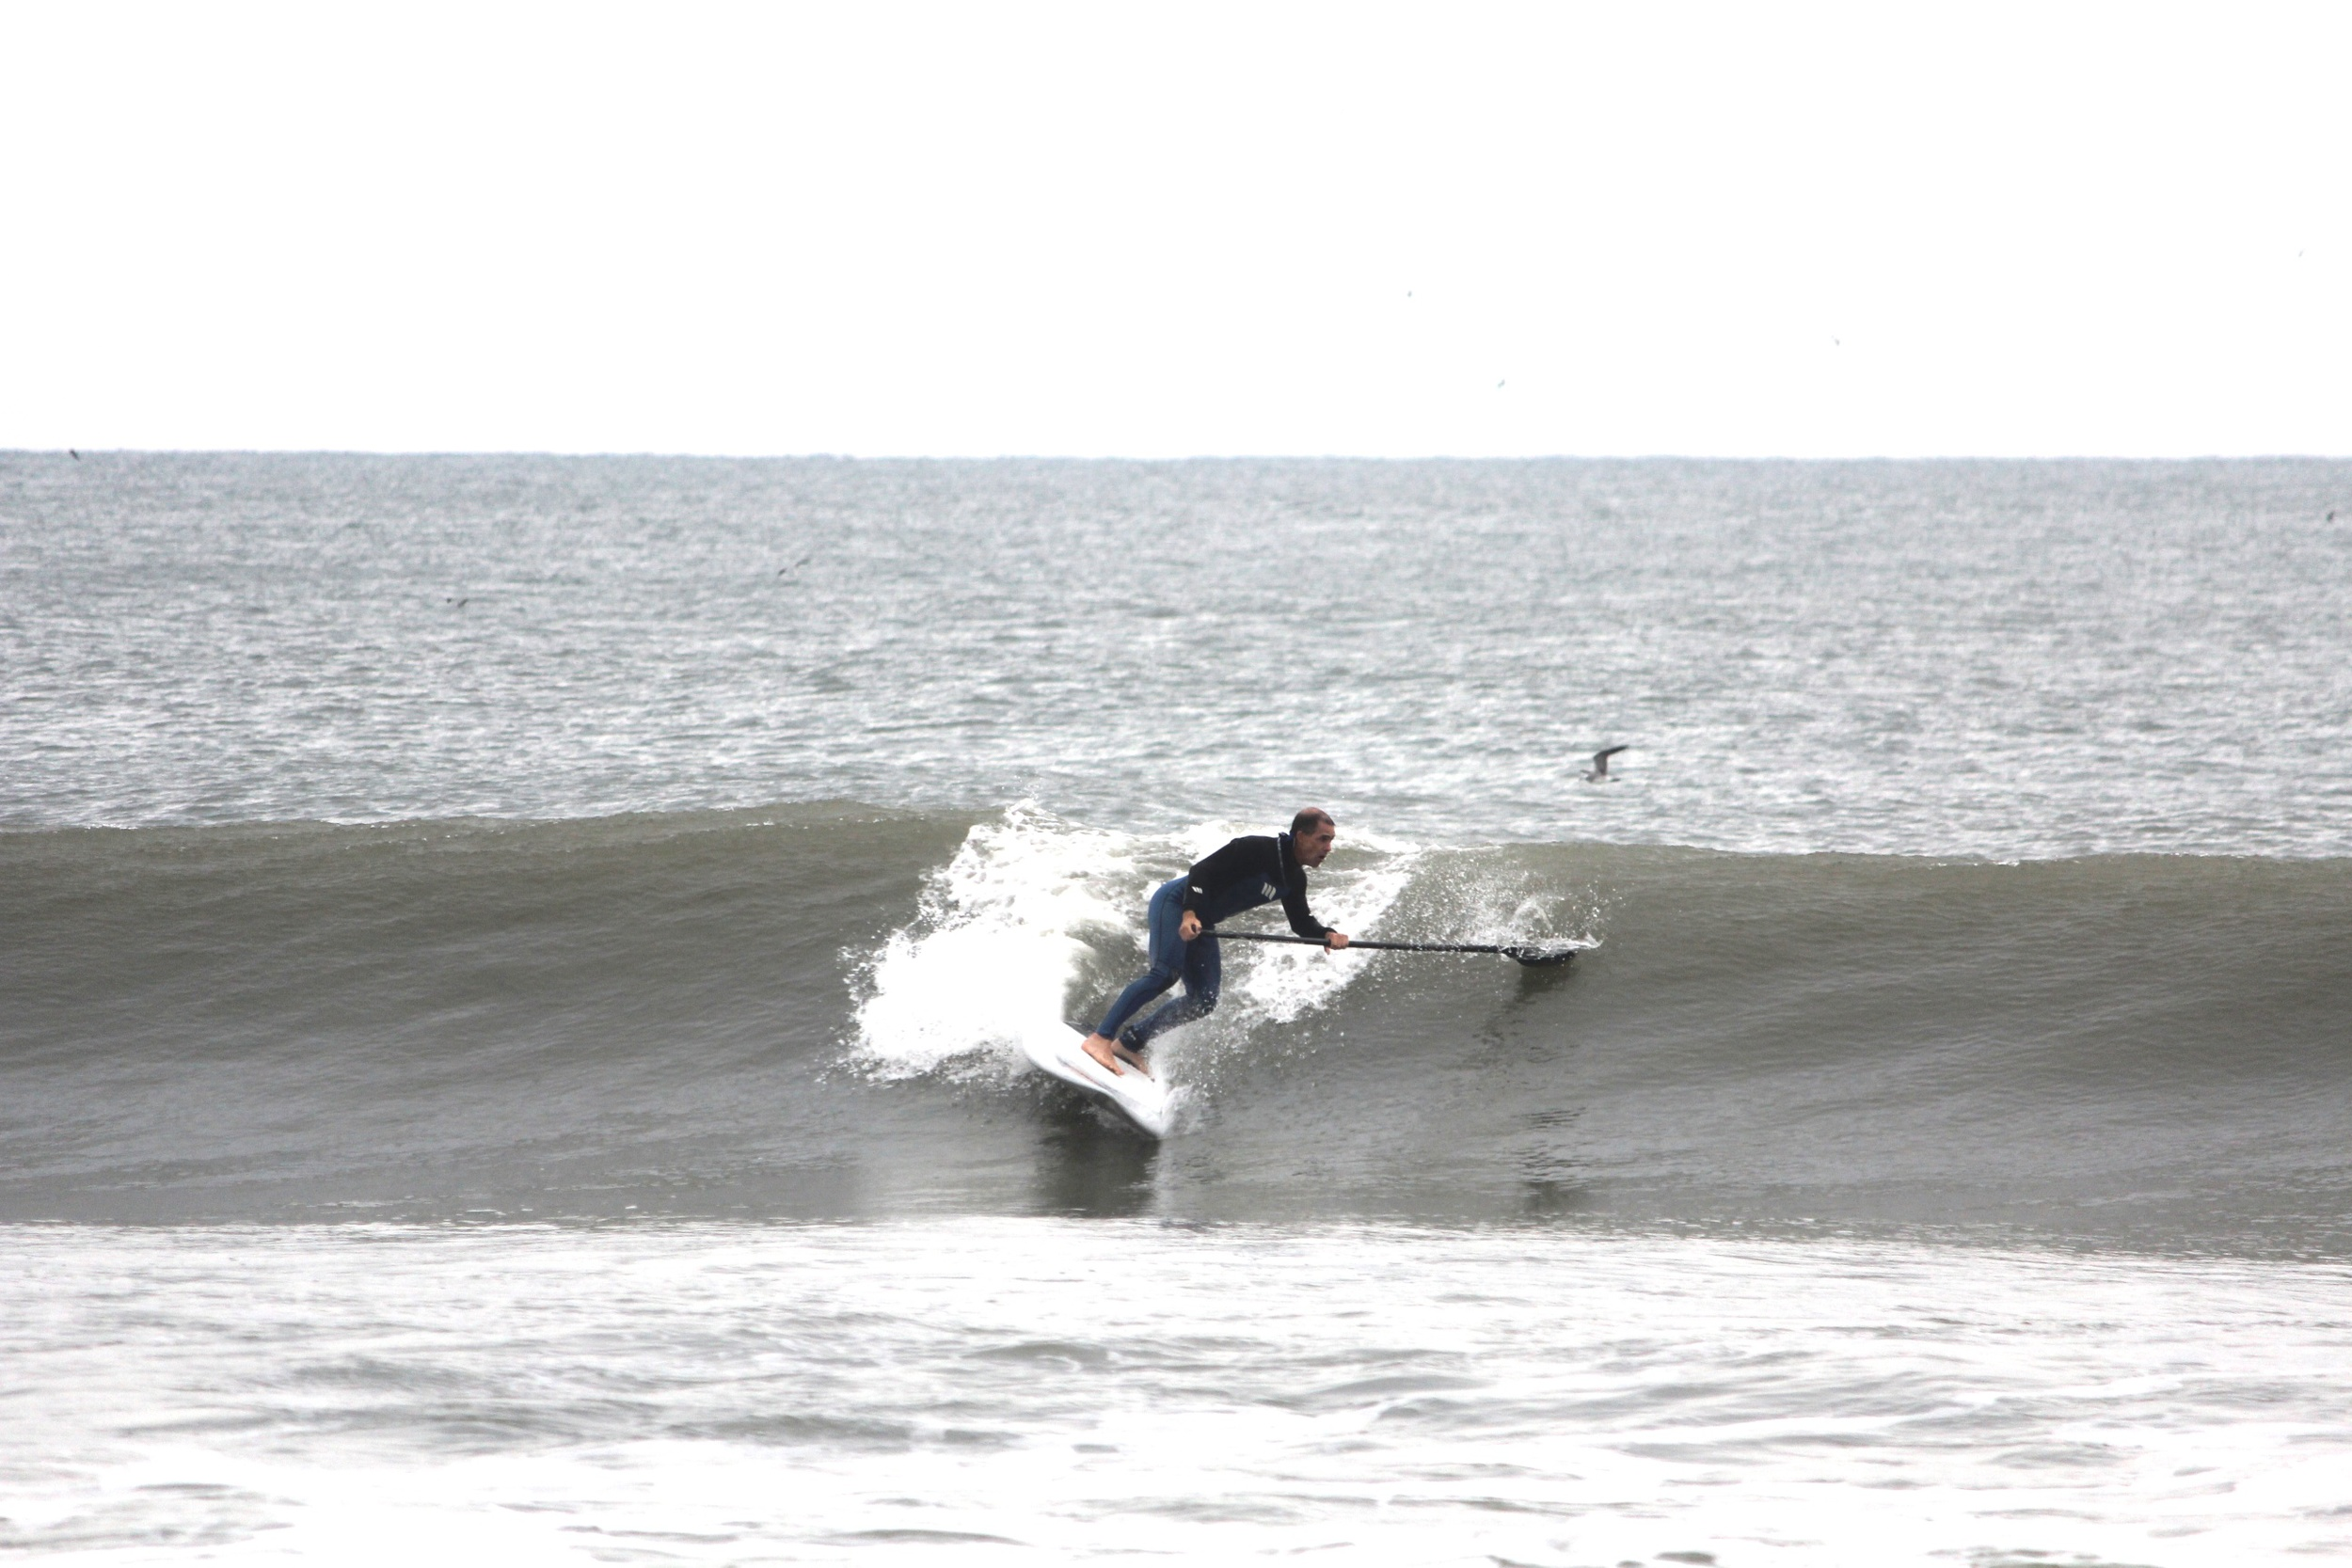 Surf Machine testing the 7'8 Accelerator